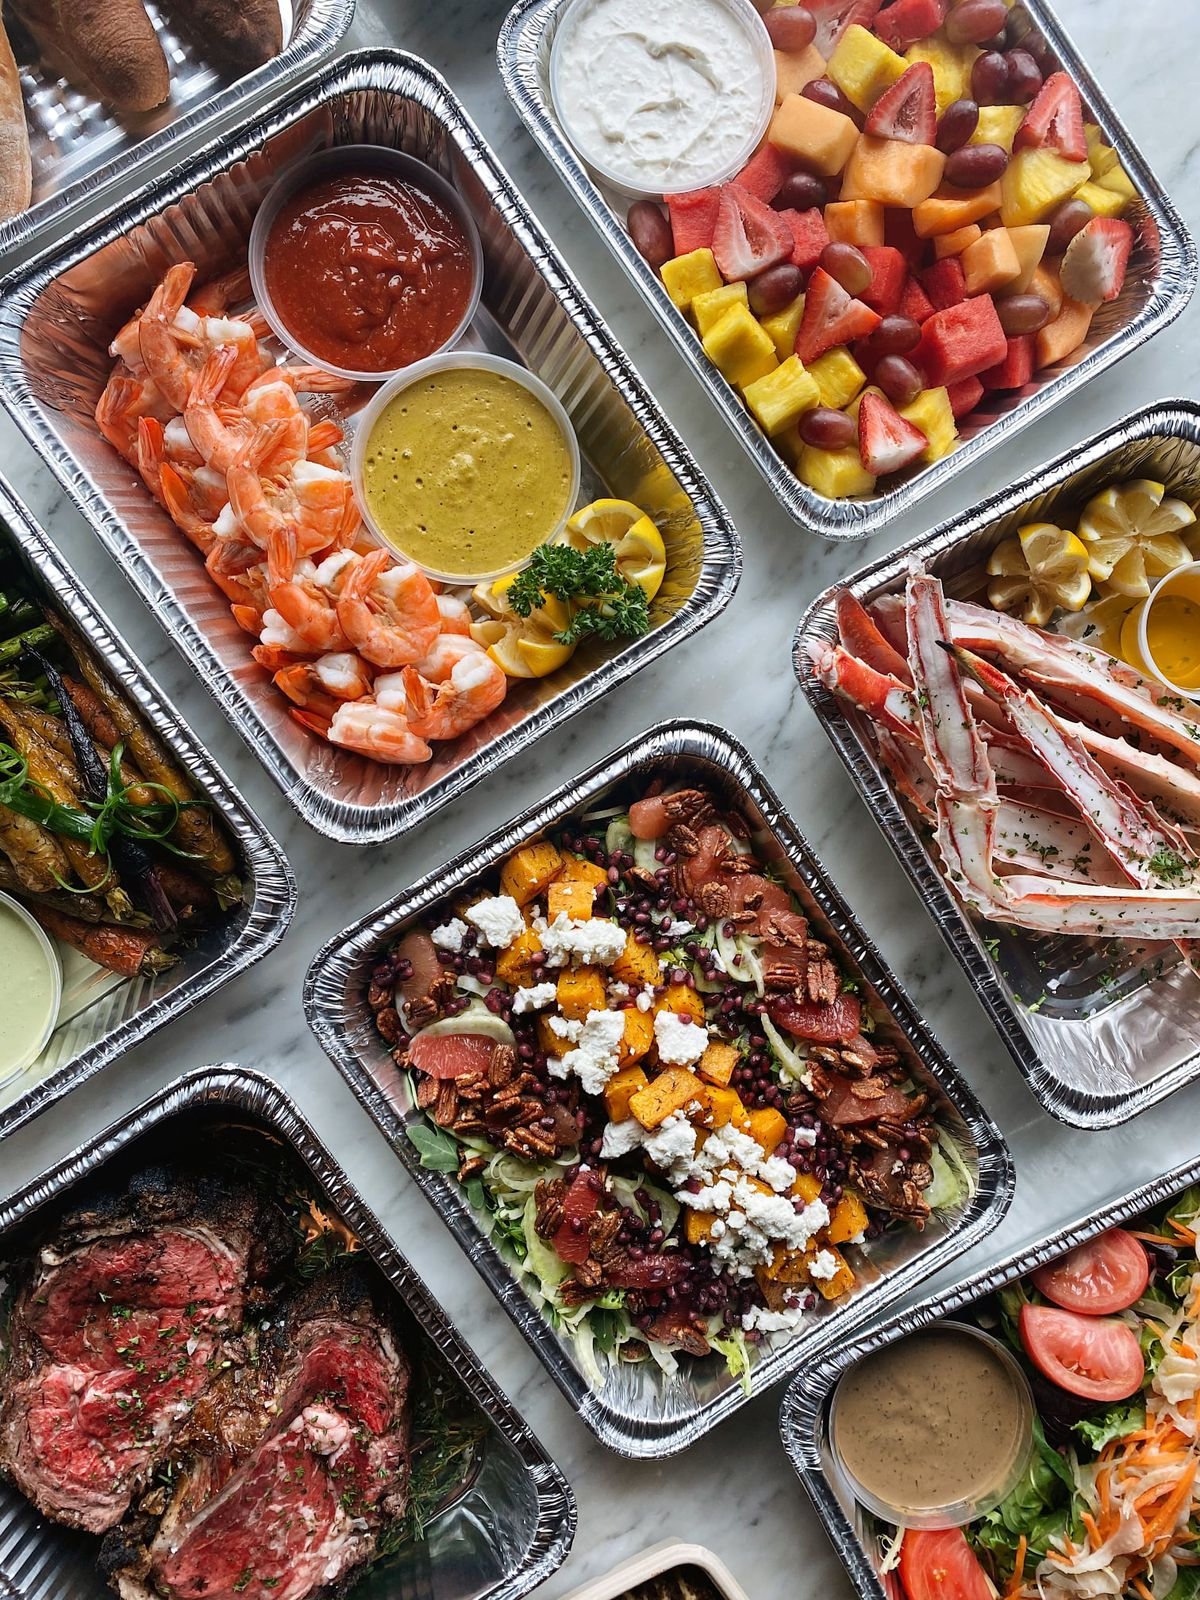 6Smith's Easter take-and-make meals all portioned in aluminum takeout containers. Prime-rib, salad, shrimp cocktail, fruit salad, and crab legs are pictured.